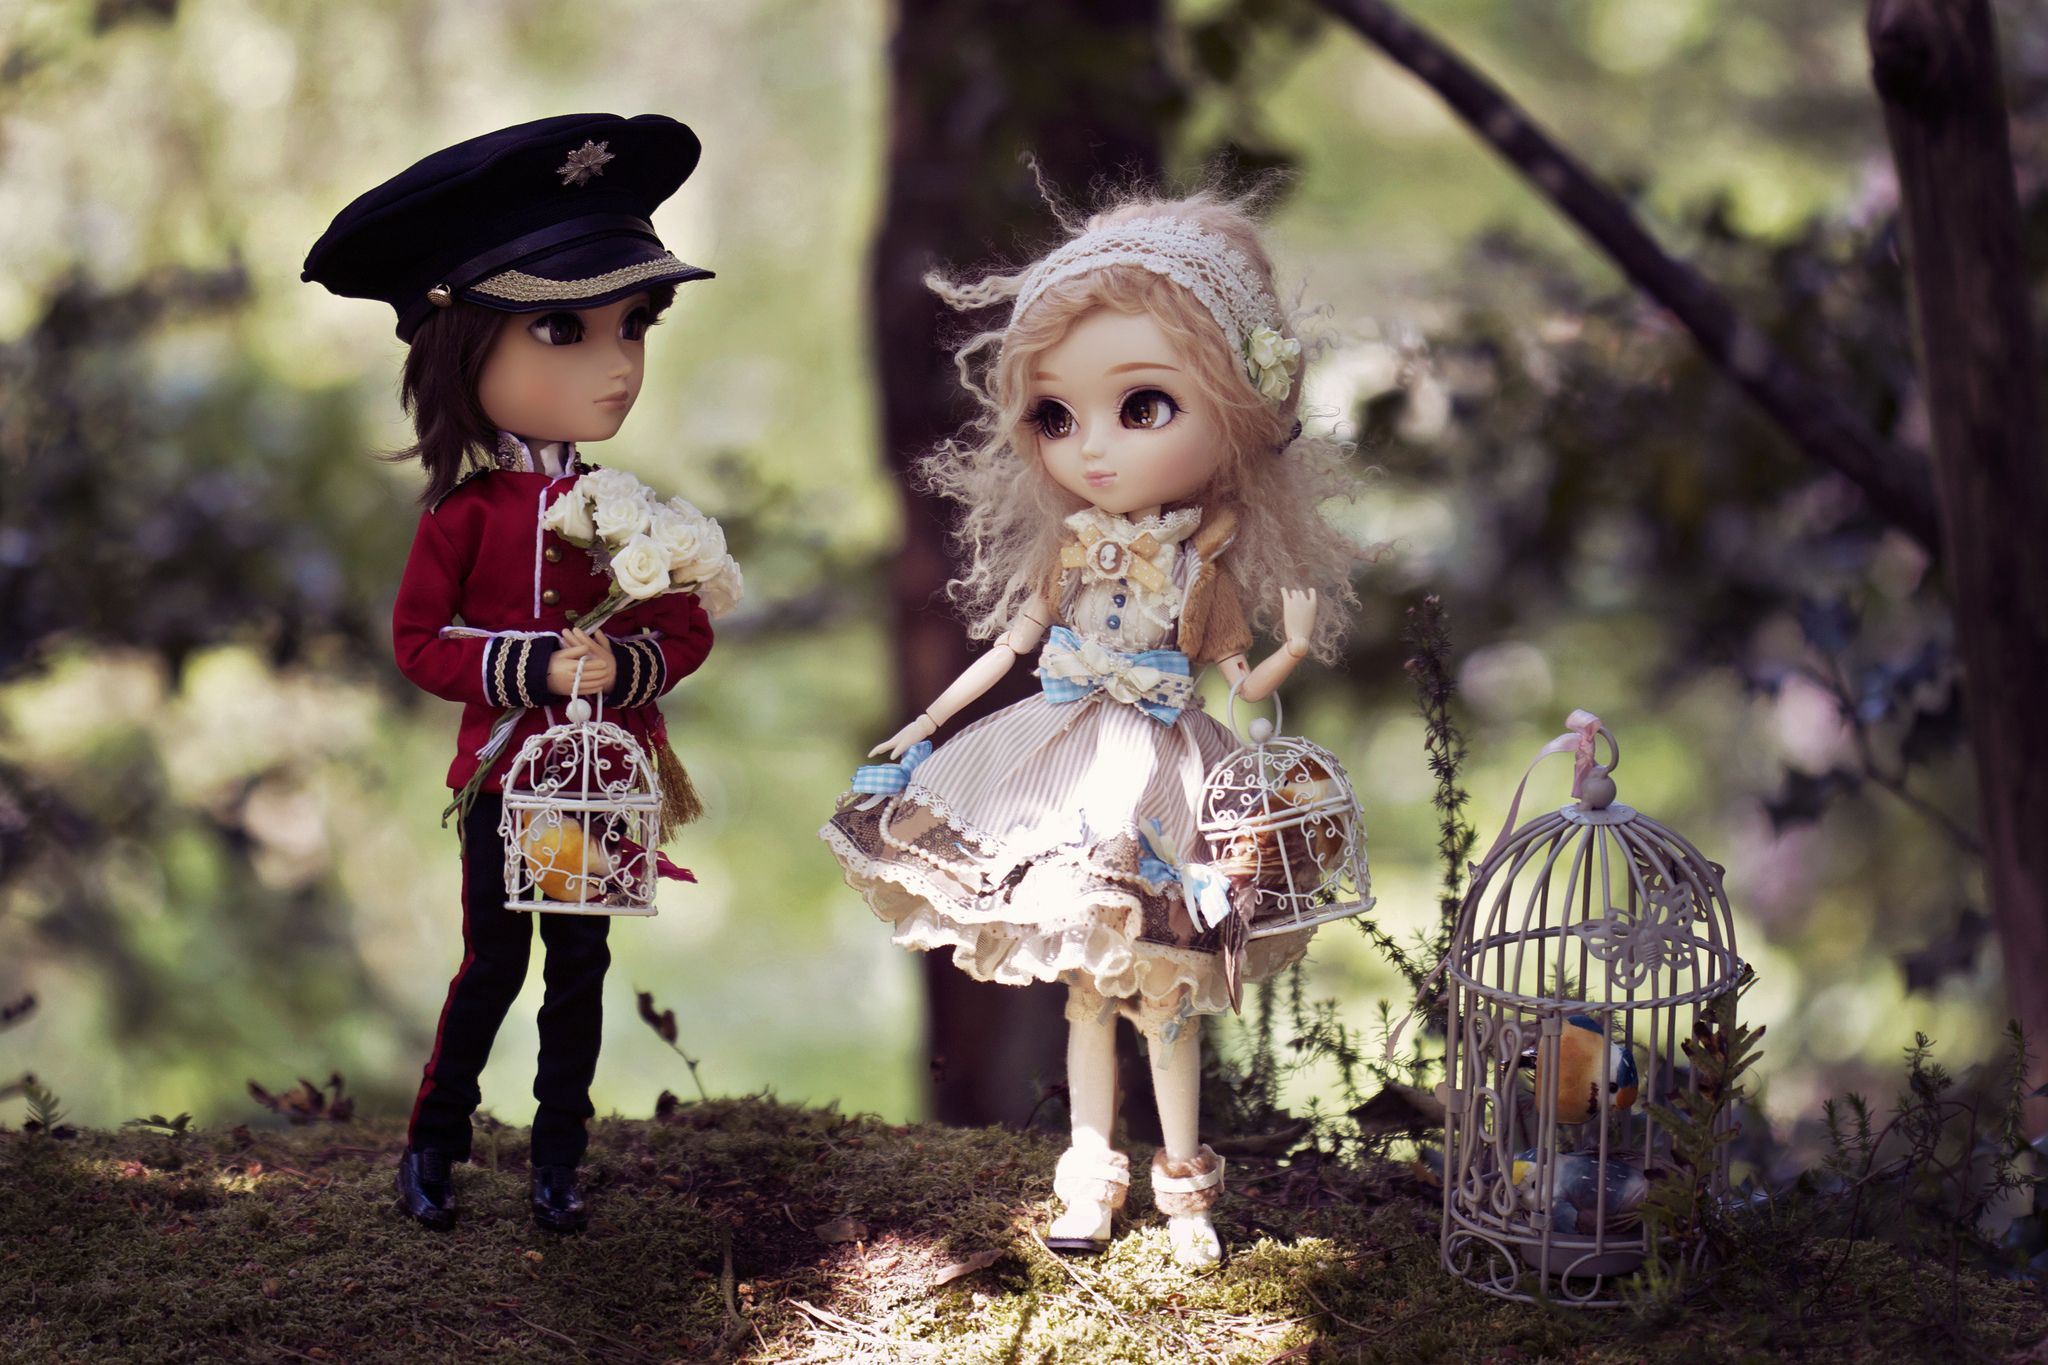 Pin By Preet Sangha On Dolls Cute Couple Wallpaper Cute Couple Images Couples Doll